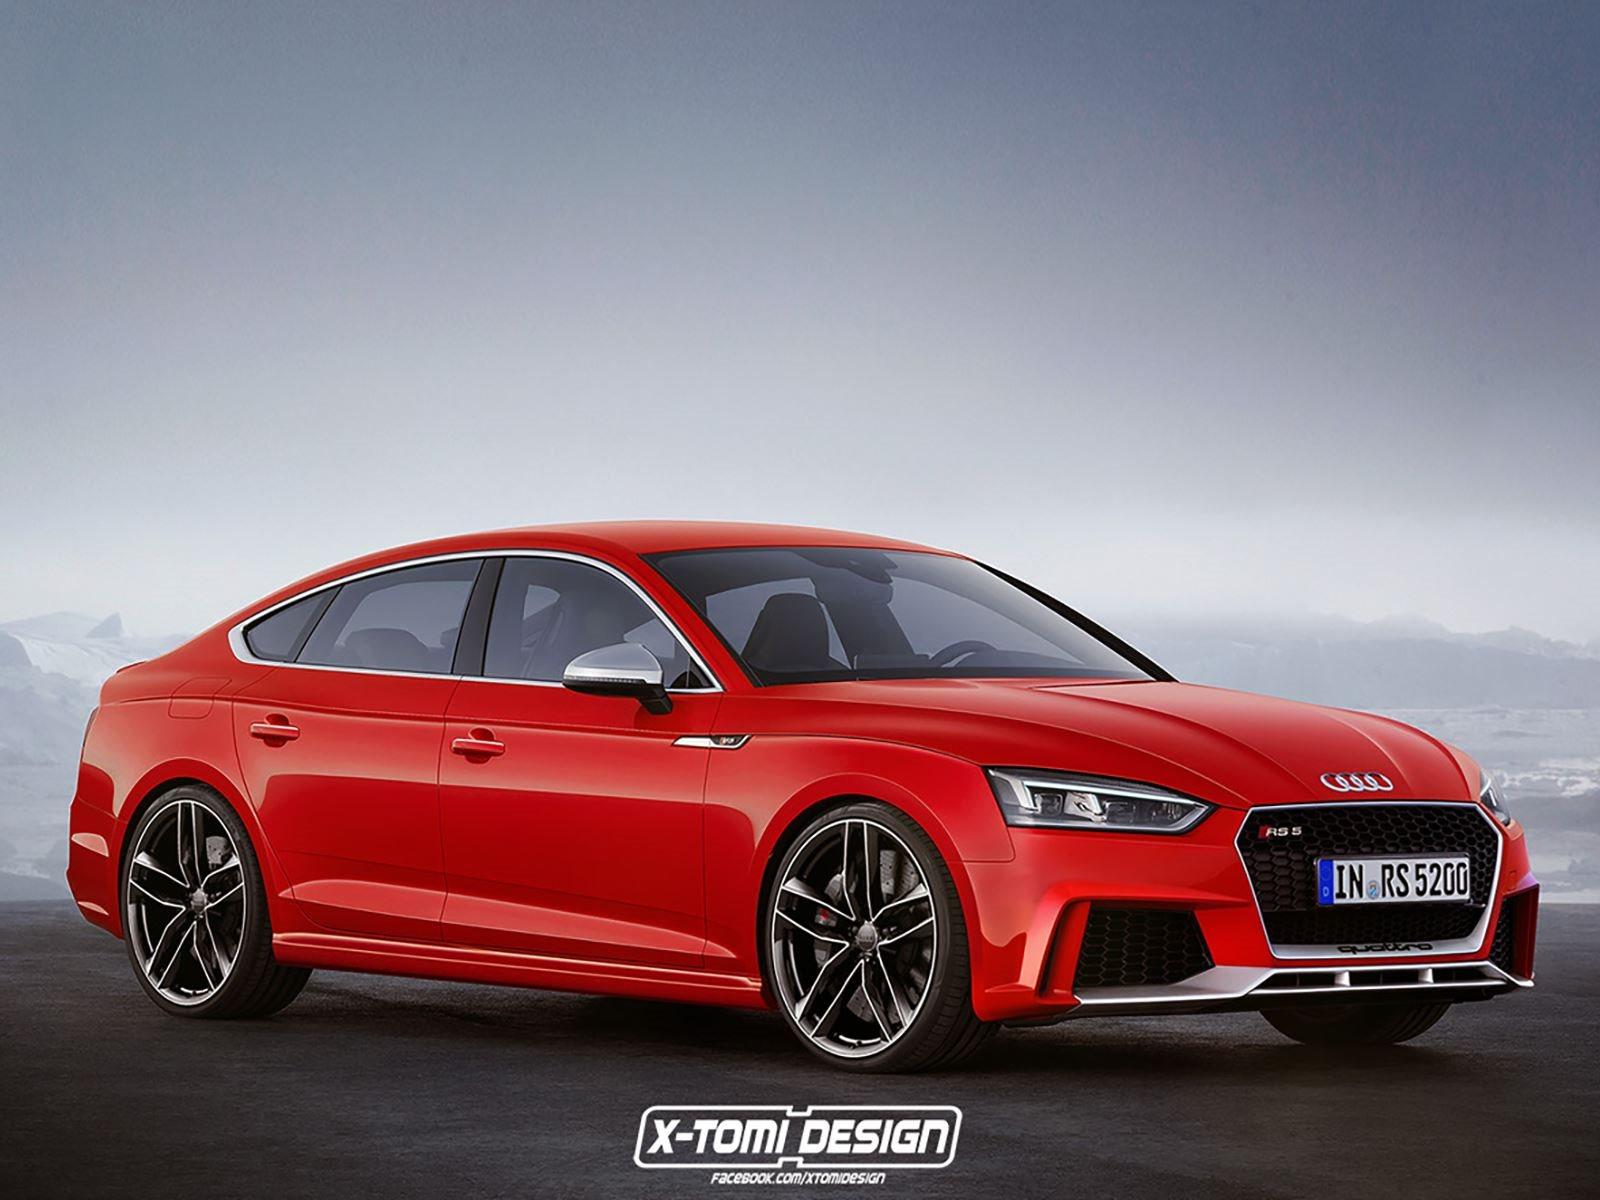 38 The Best 2020 Audi Rs5 New Review